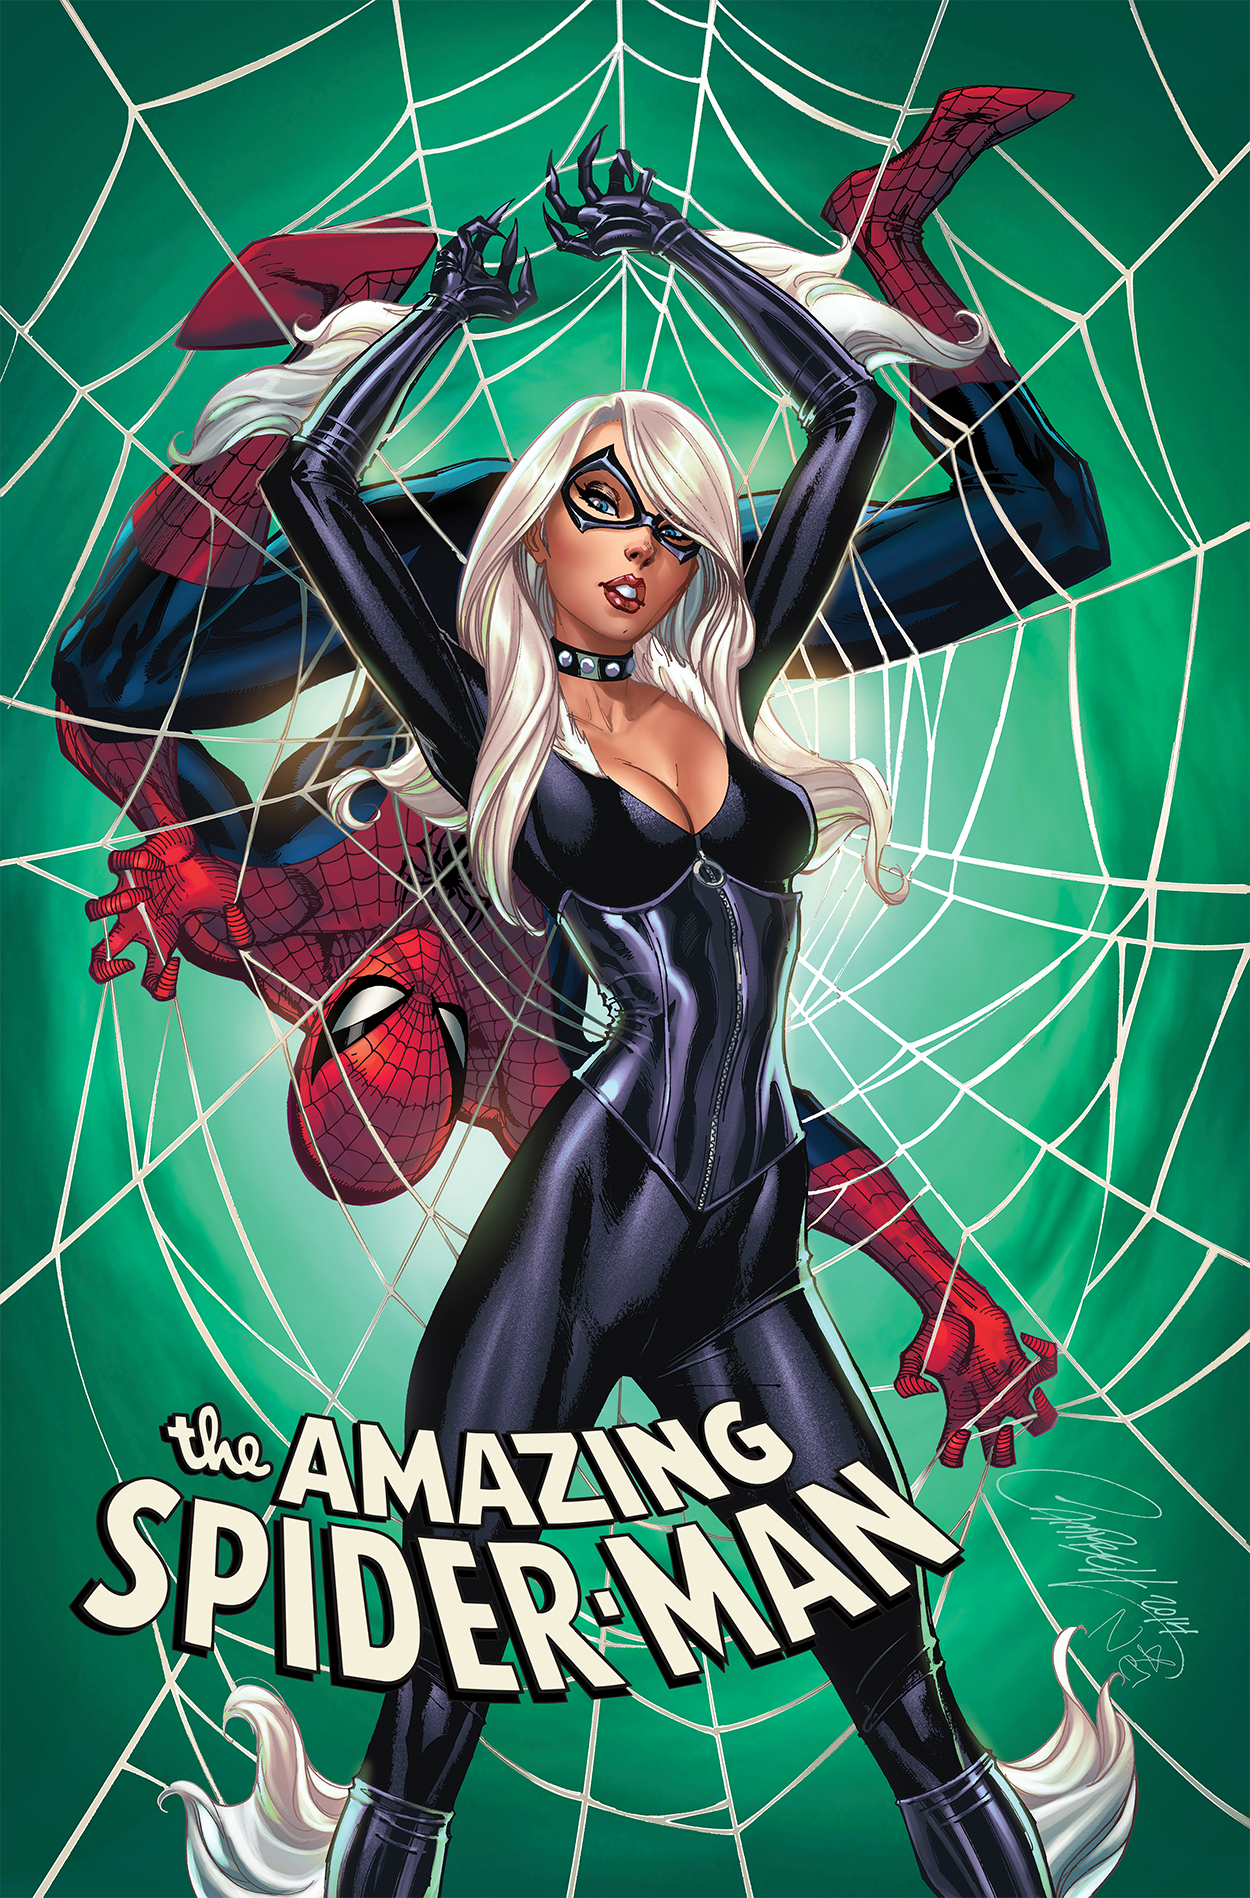 Amazing Spider-Man #10 Variant art by J. Scott Campbell with colors by Nei Ruffino